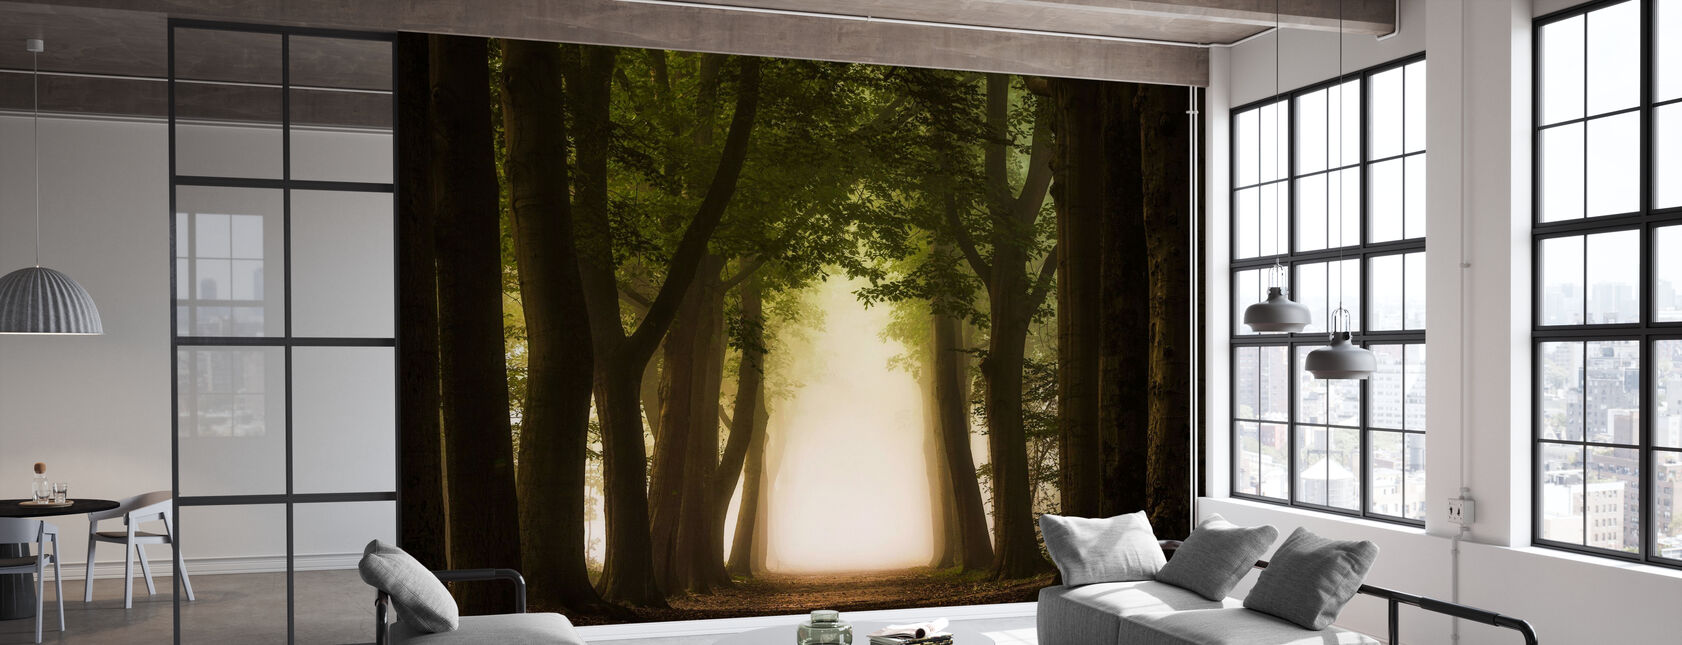 Path Through Forest - Wallpaper - Office